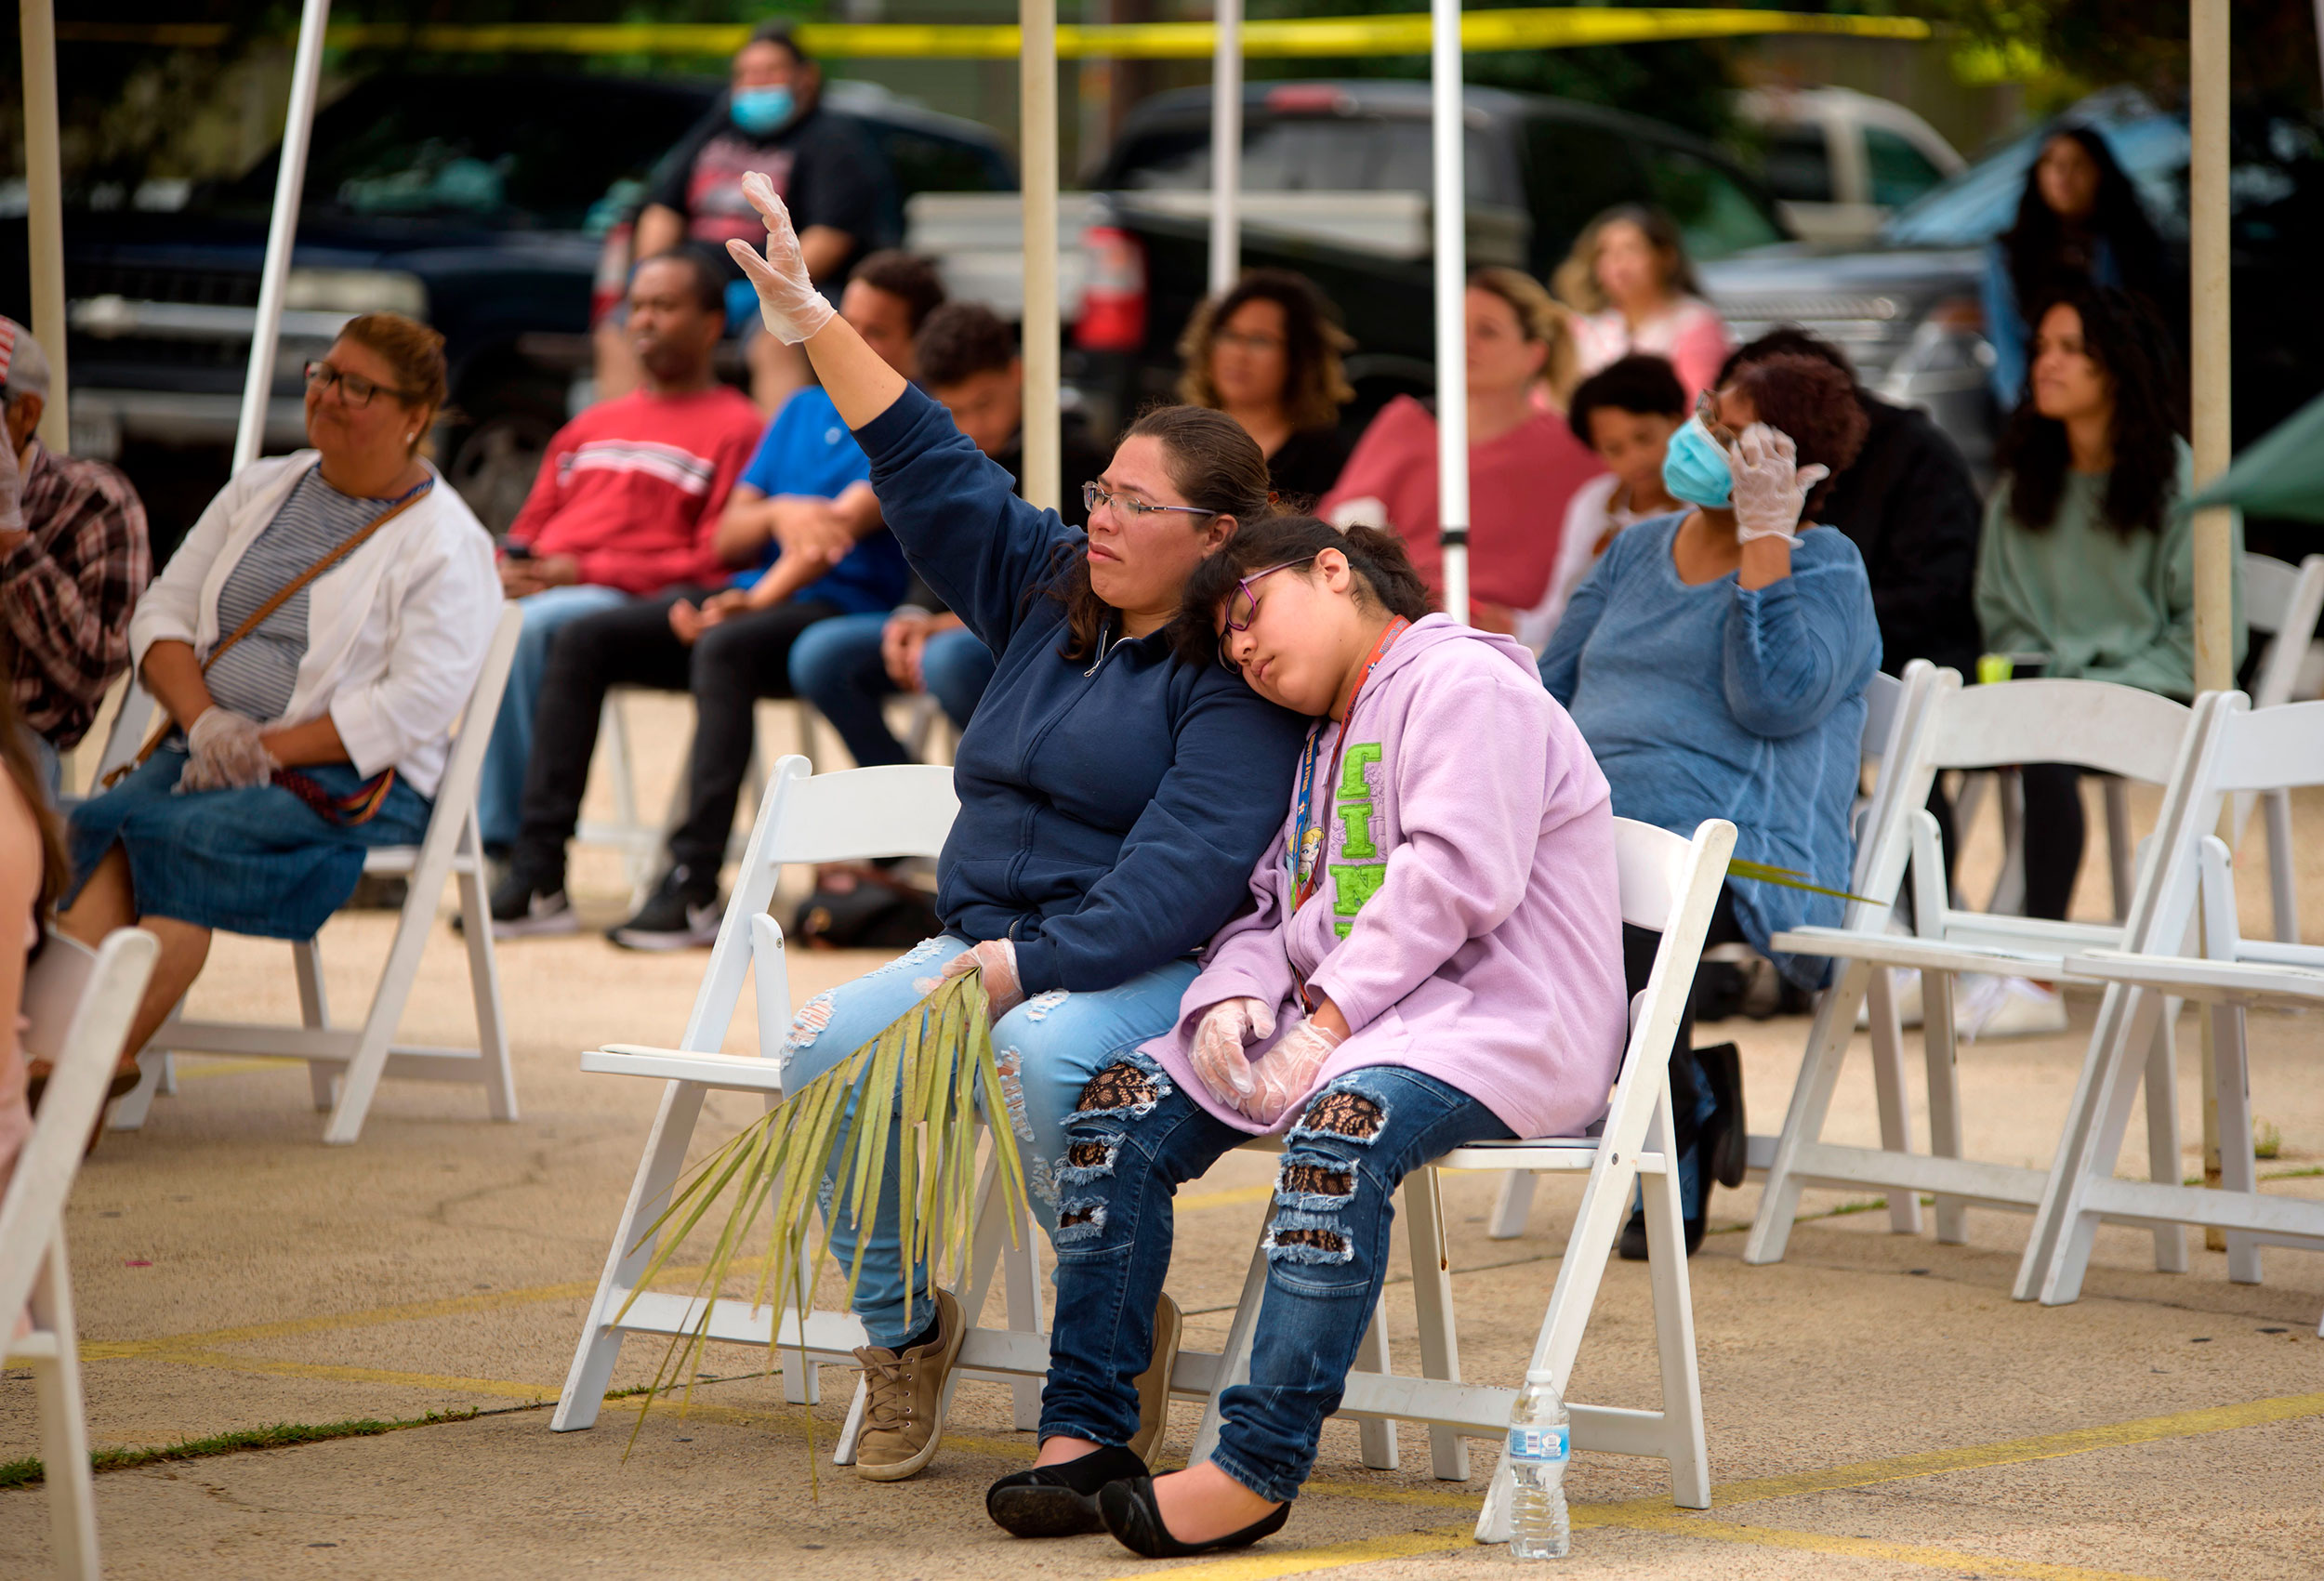 Parishioners attend a Sunday morning worship service at City On A Hill Church in Houston, Texas. The service was held outside in the church's parking lot and the church practiced social distancing during the service.